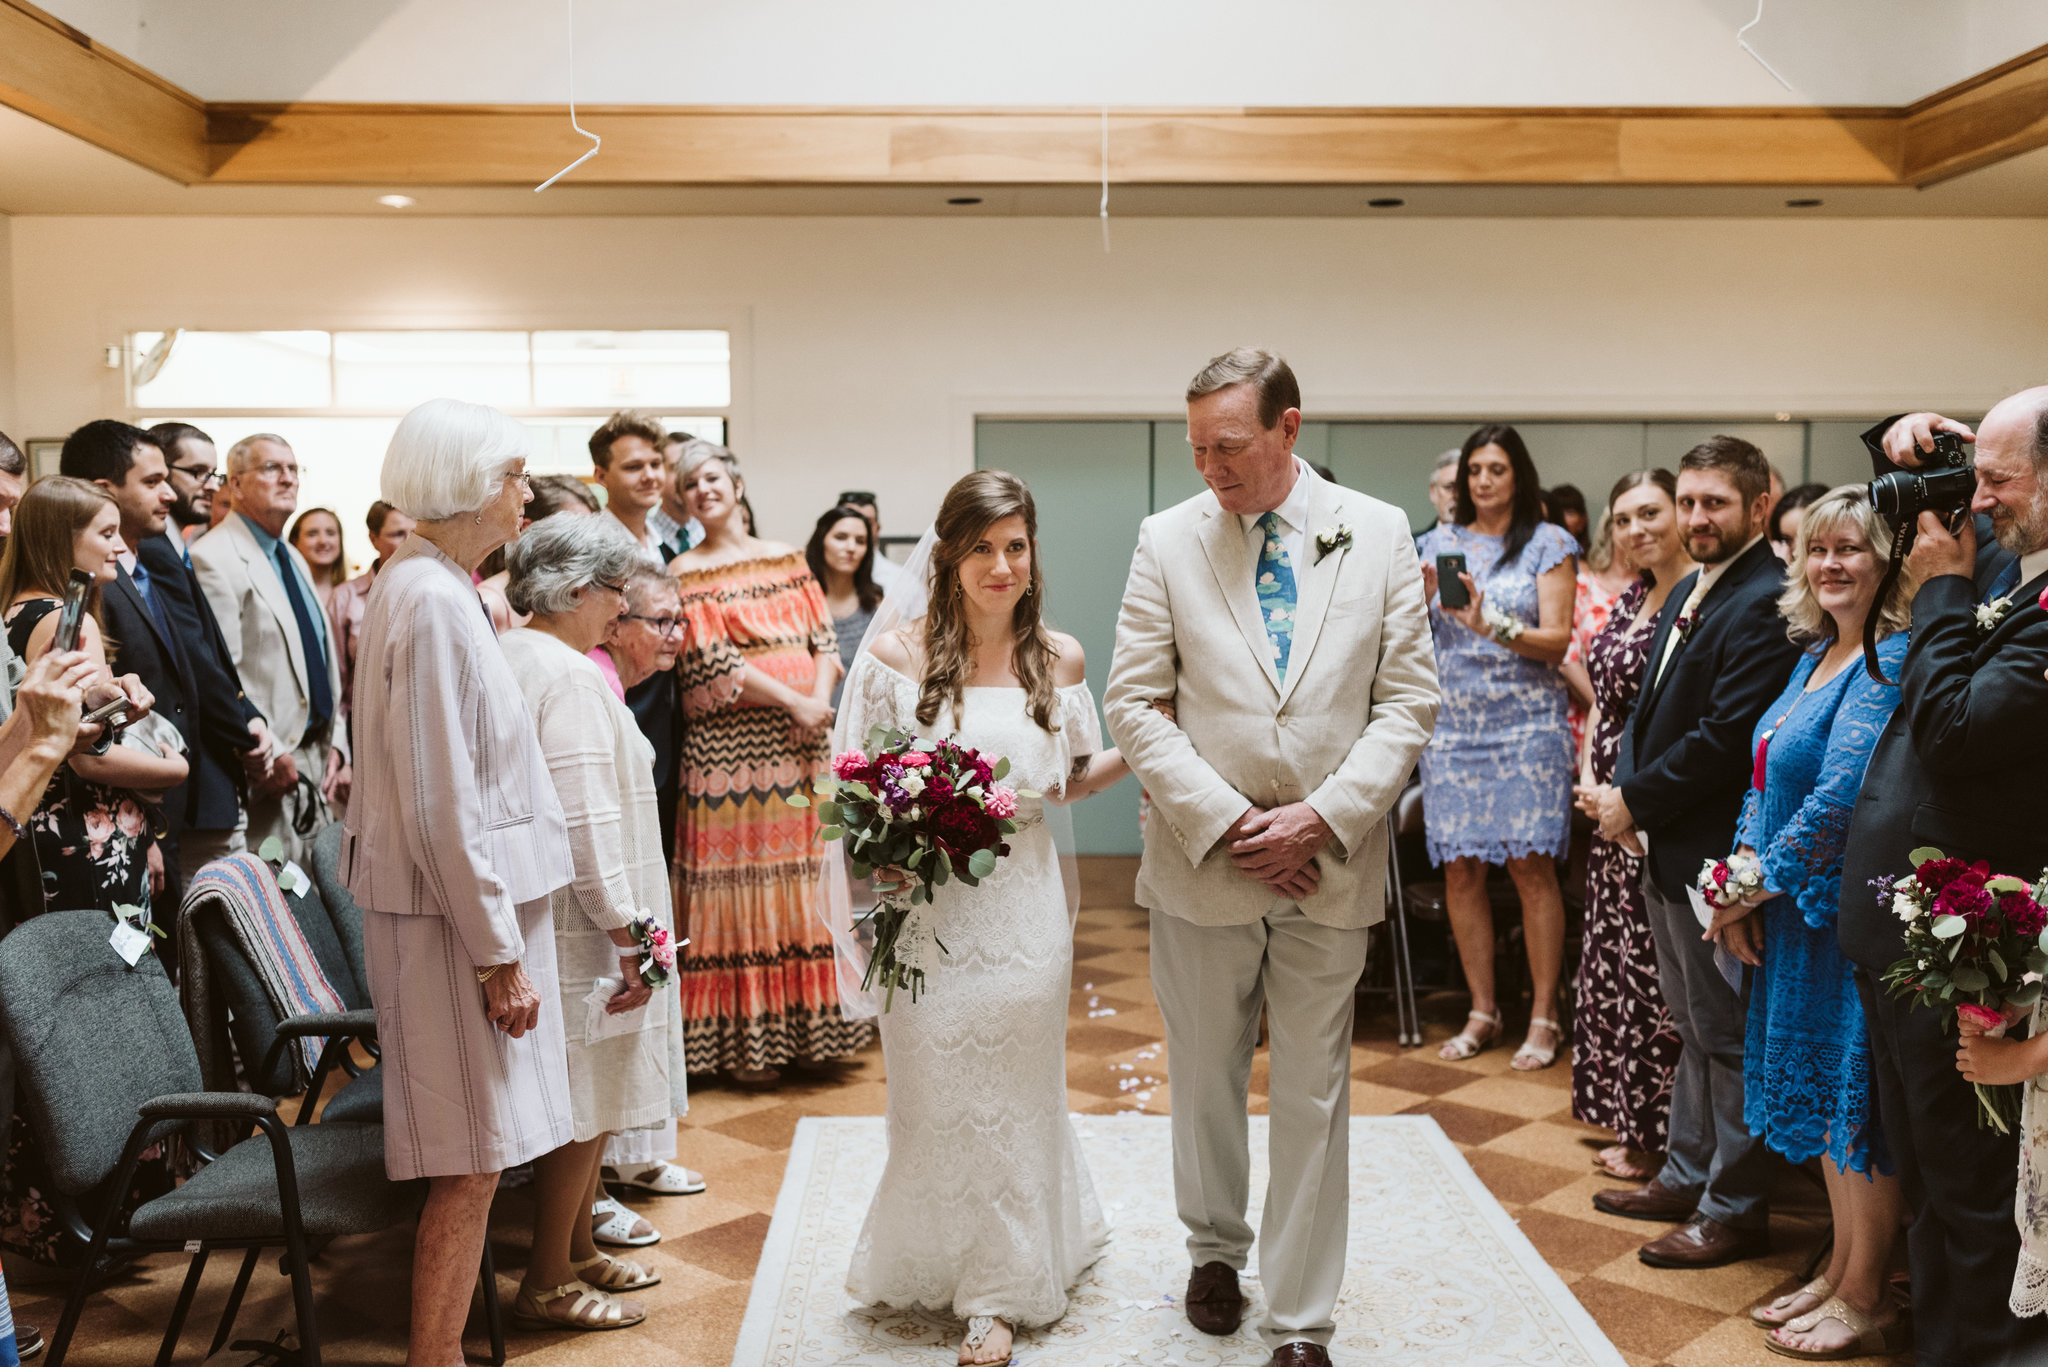 Annapolis, Quaker Wedding, Maryland Wedding Photographer, Intimate, Small Wedding, Vintage, DIY, Bride Walking Down Aisle with Father, Wedding Guests Standing during Ceremony